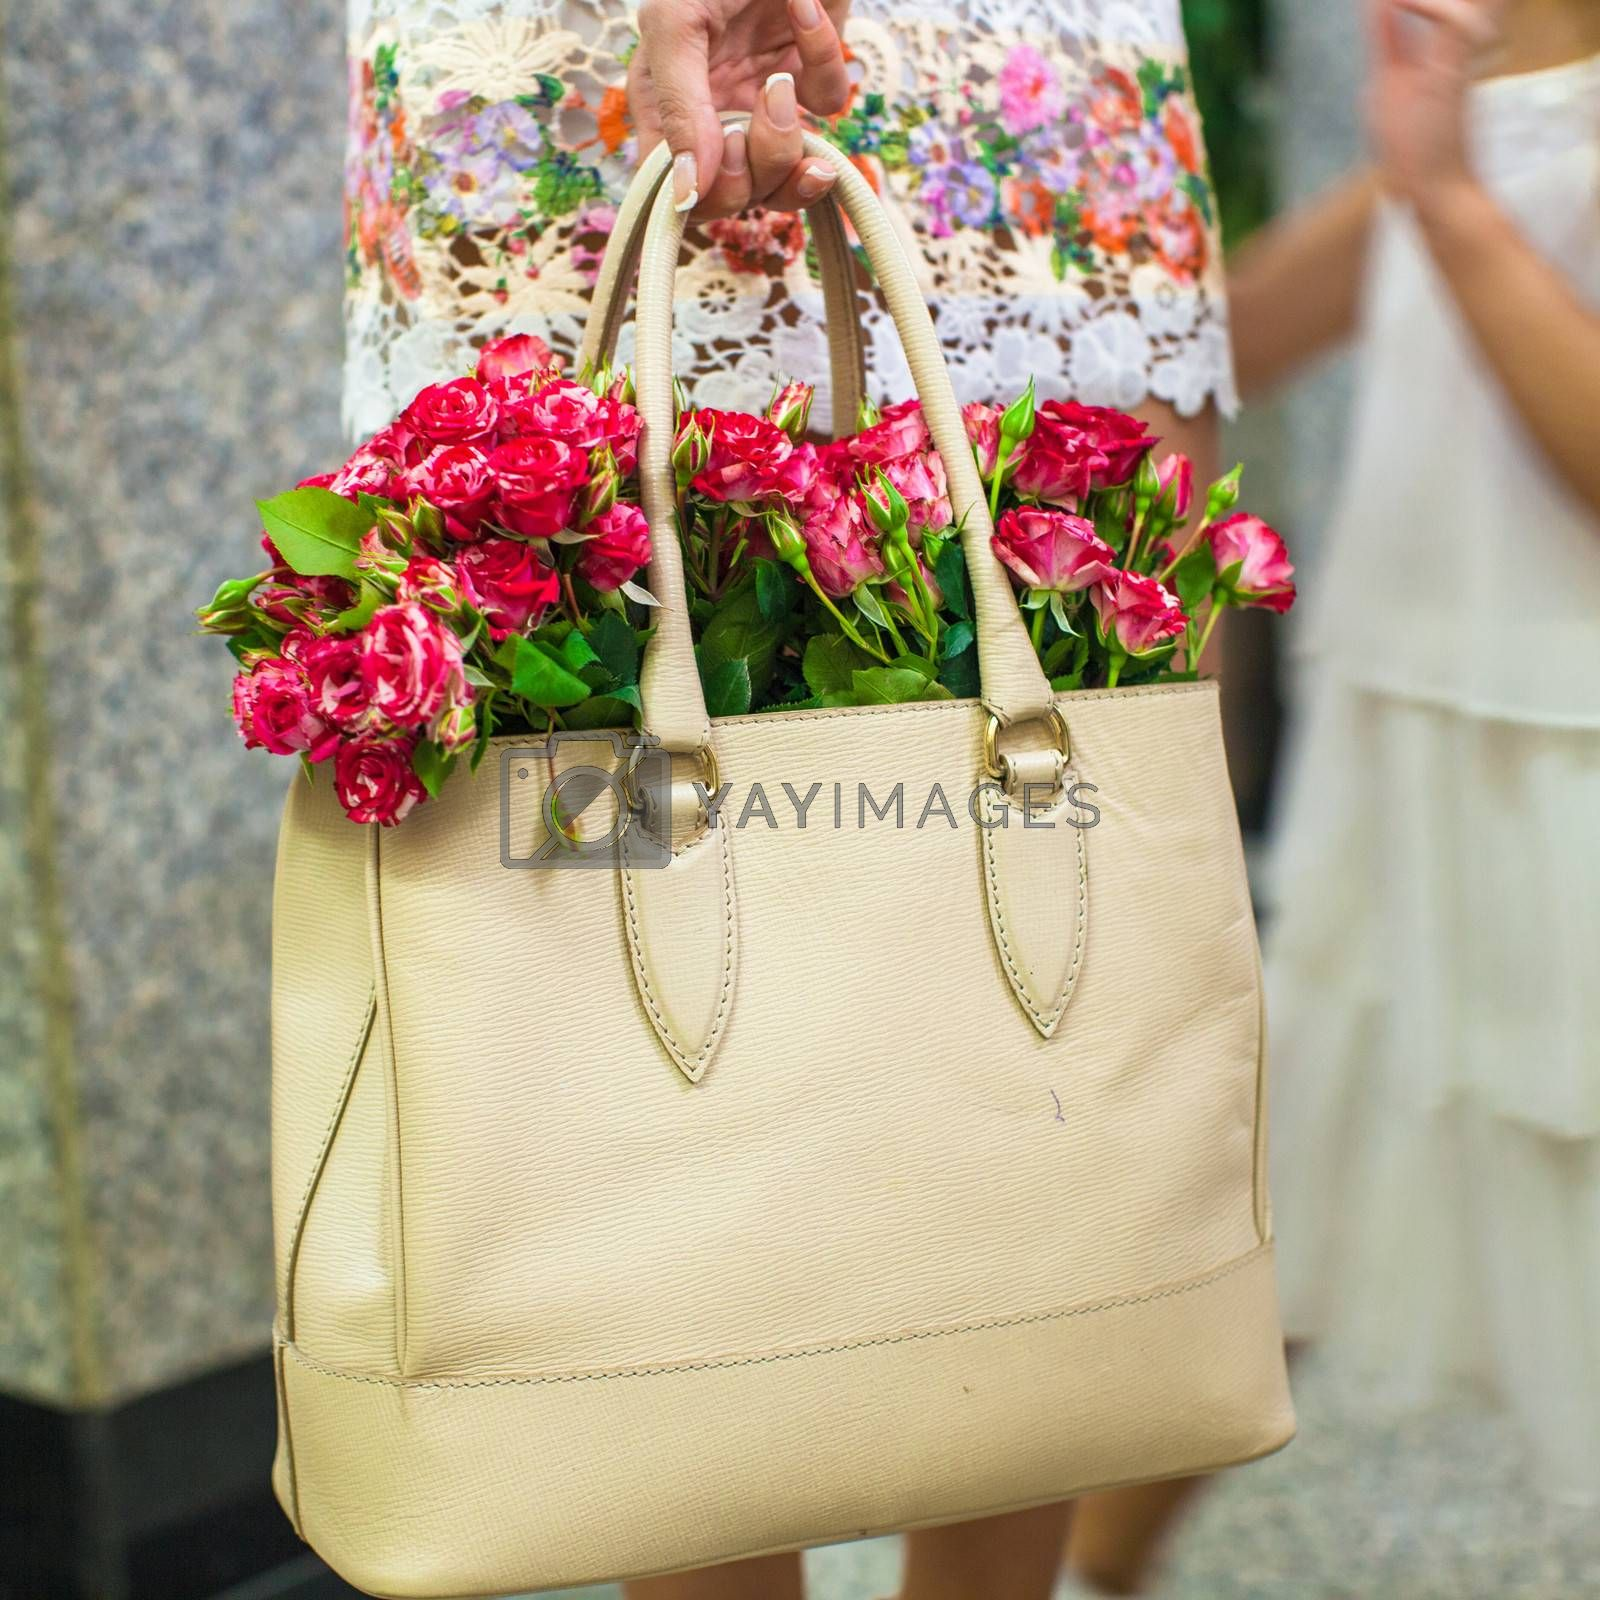 Small red charming flowers in fashion women's bag